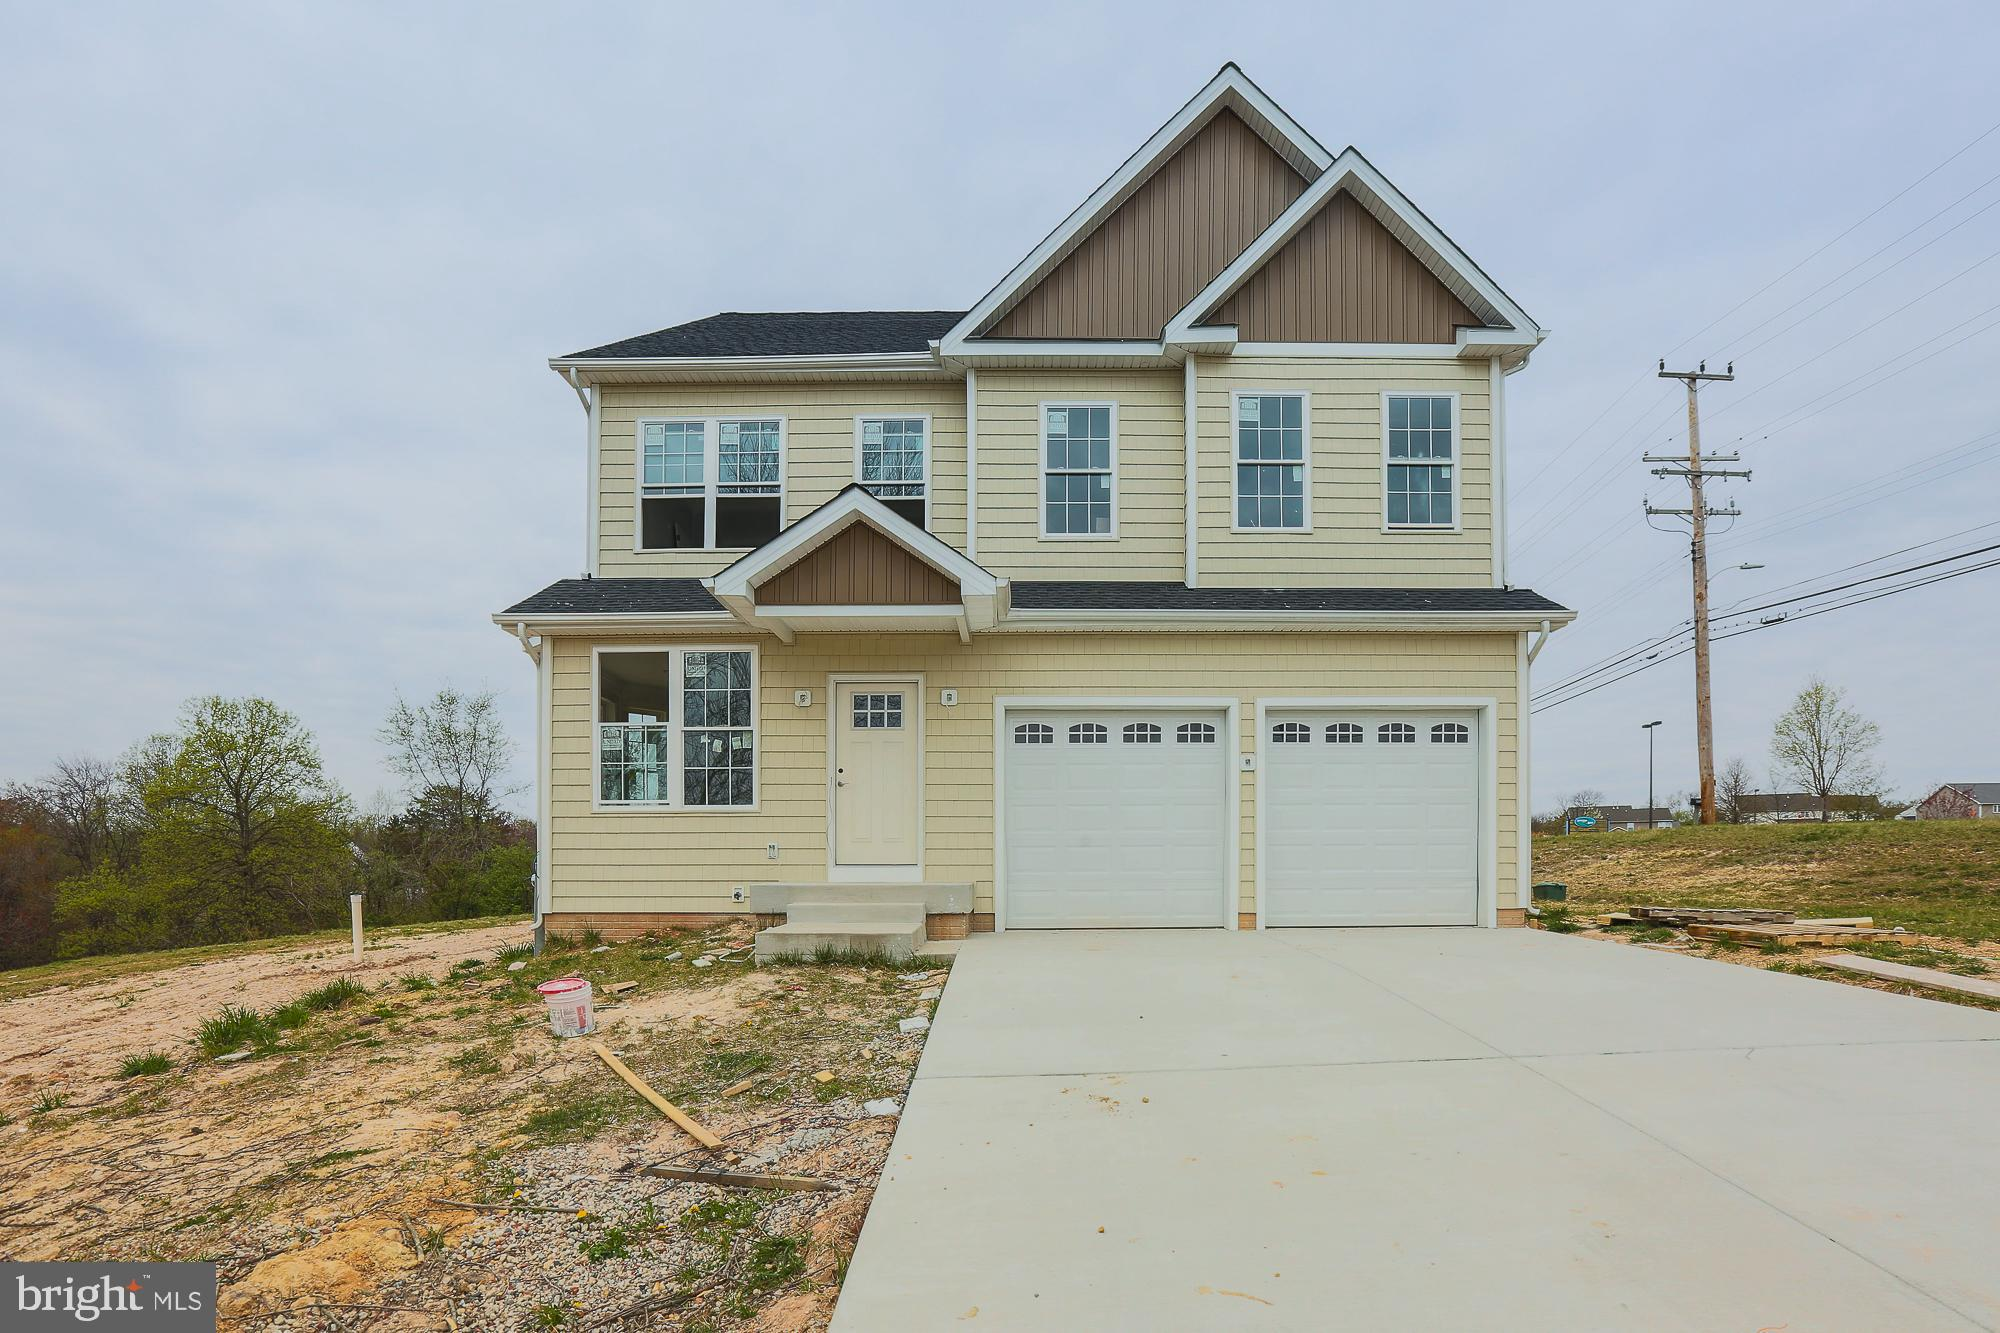 5026 LOLLY LANE, PERRY HALL, MD 21128